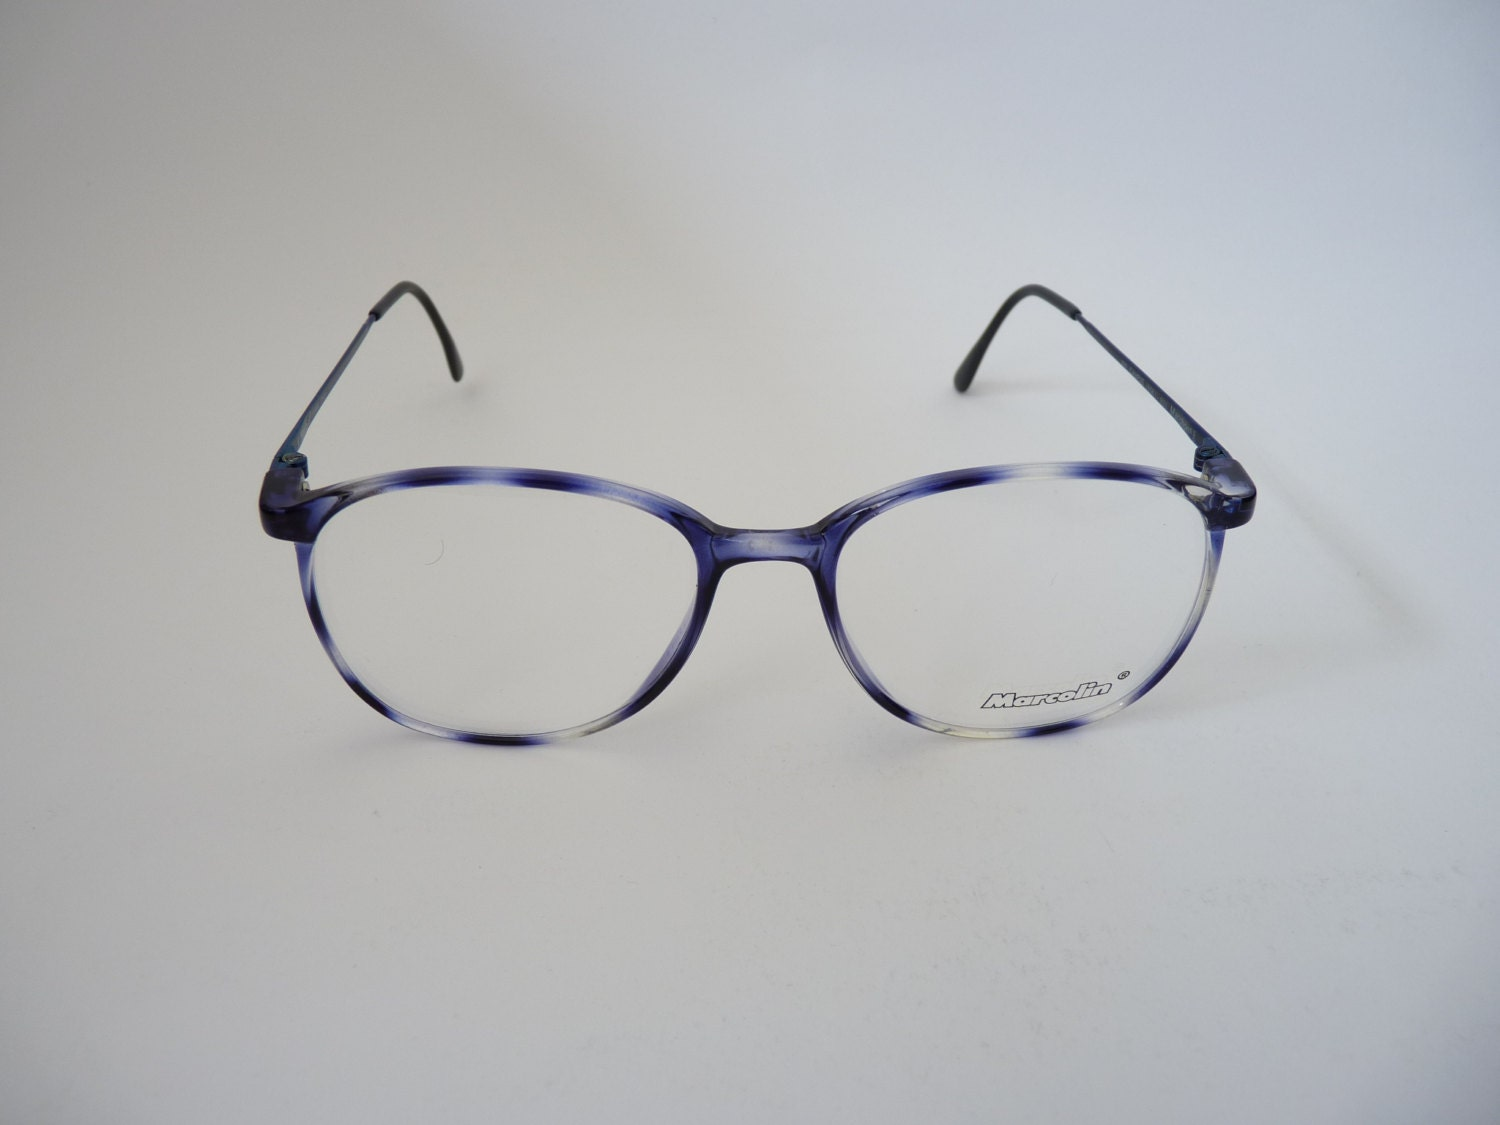 62d03f52b647 Italian blue tortoise round Eyeglasses for men or women 1980s old stock  roundy red blue frames